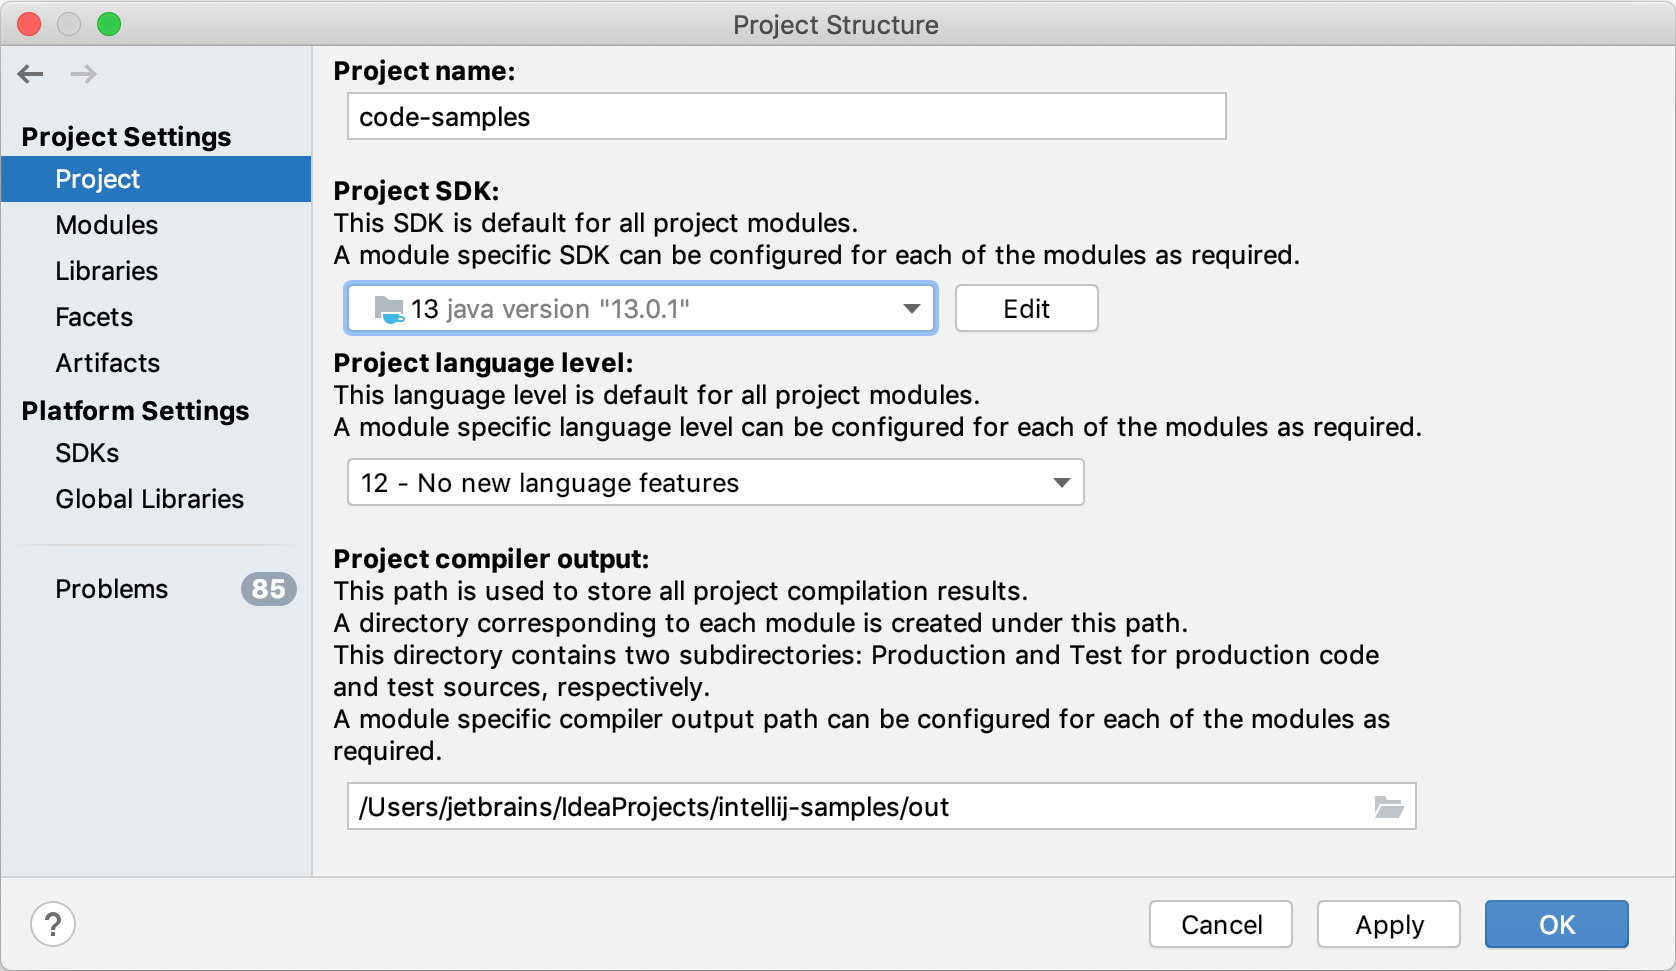 Project page of the Project Structure dialog